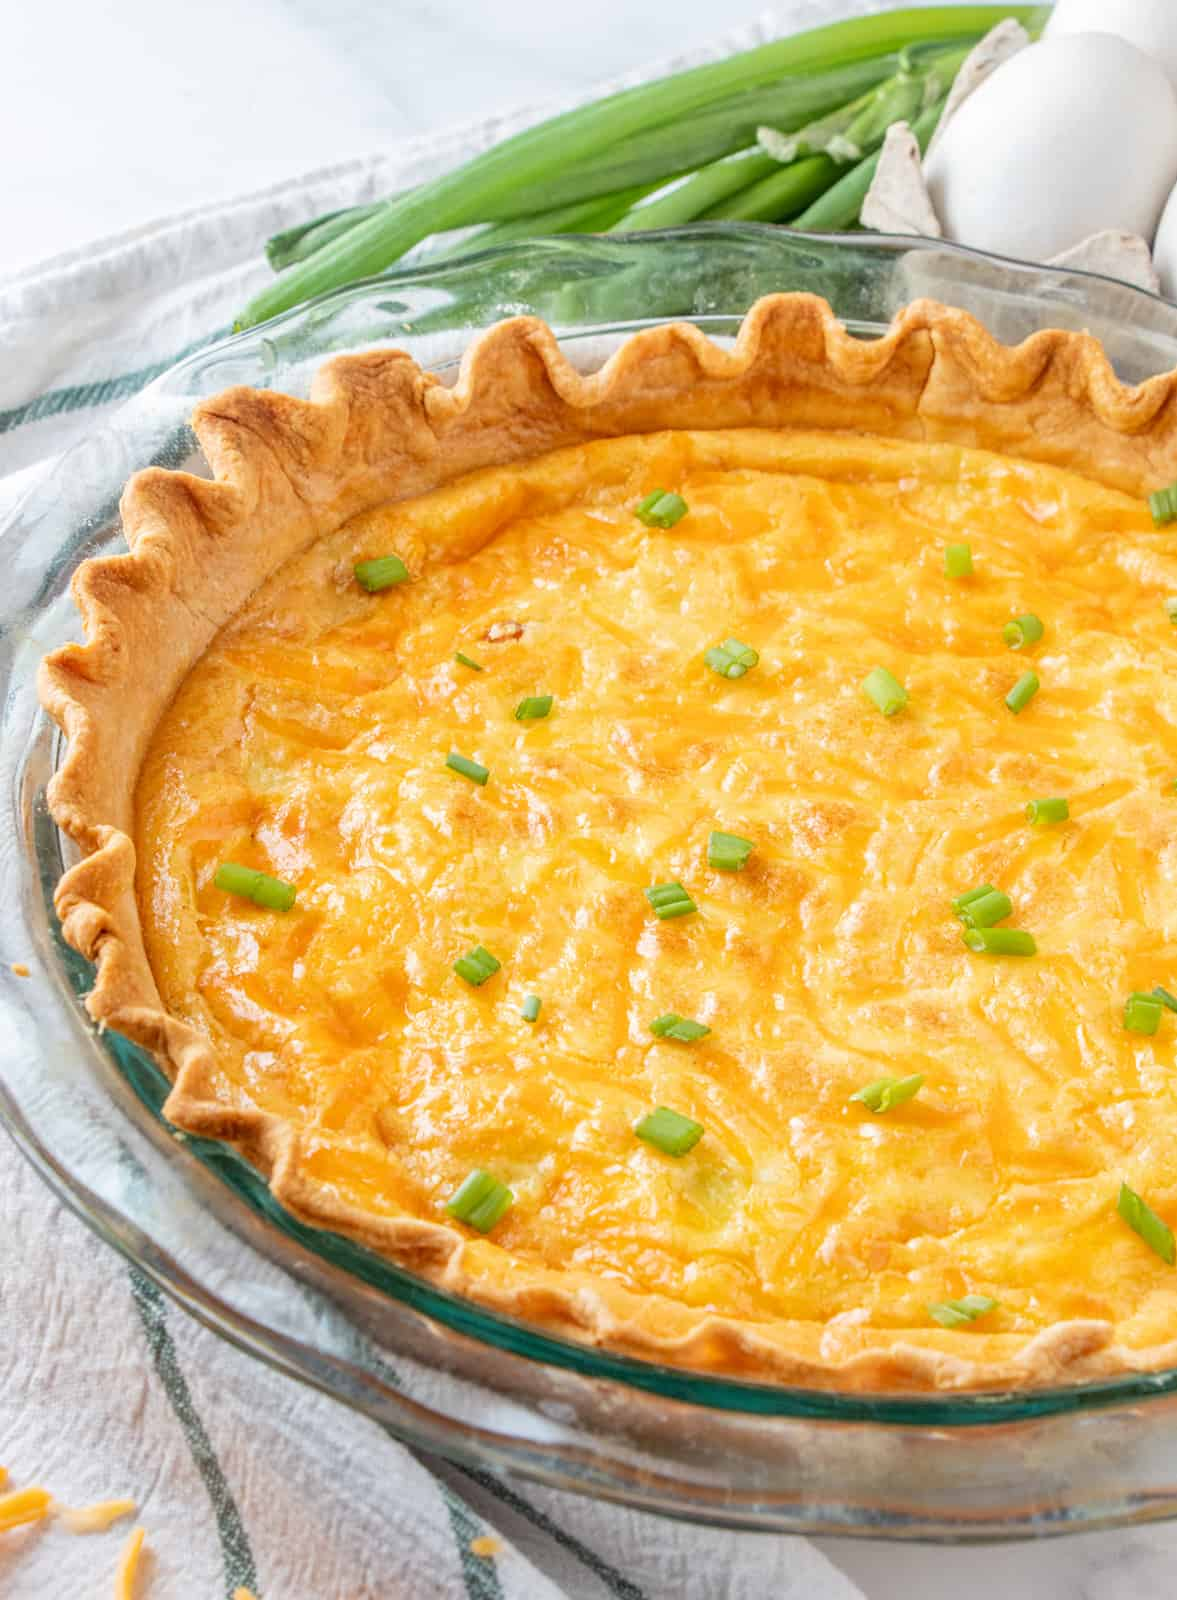 Baked Ham and Cheese Quiche in pie plate before cutting topped with green onions